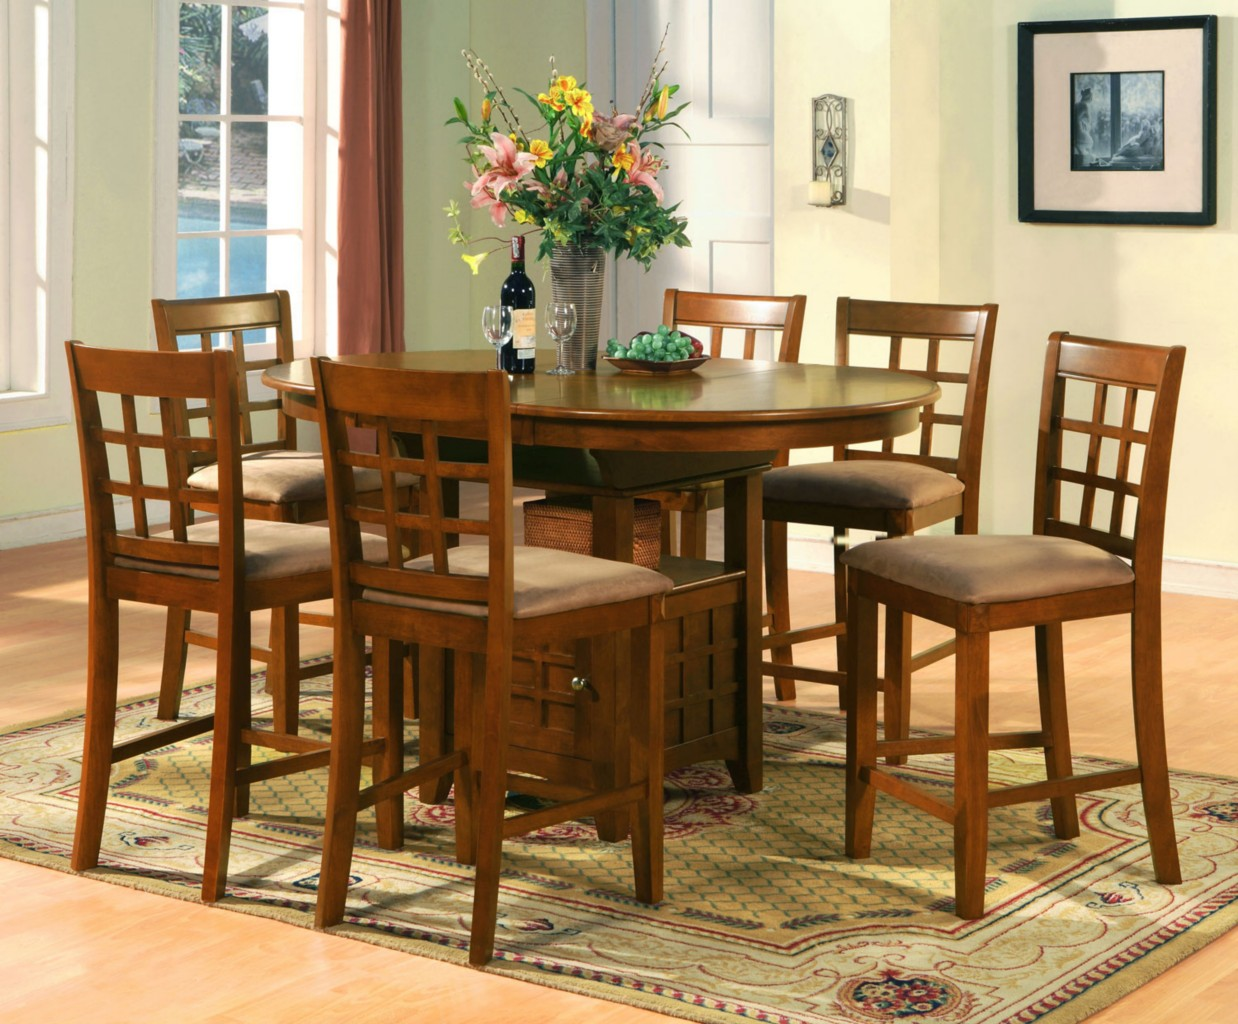 Dining table dining table sets matching bar stools for Counter height dining set